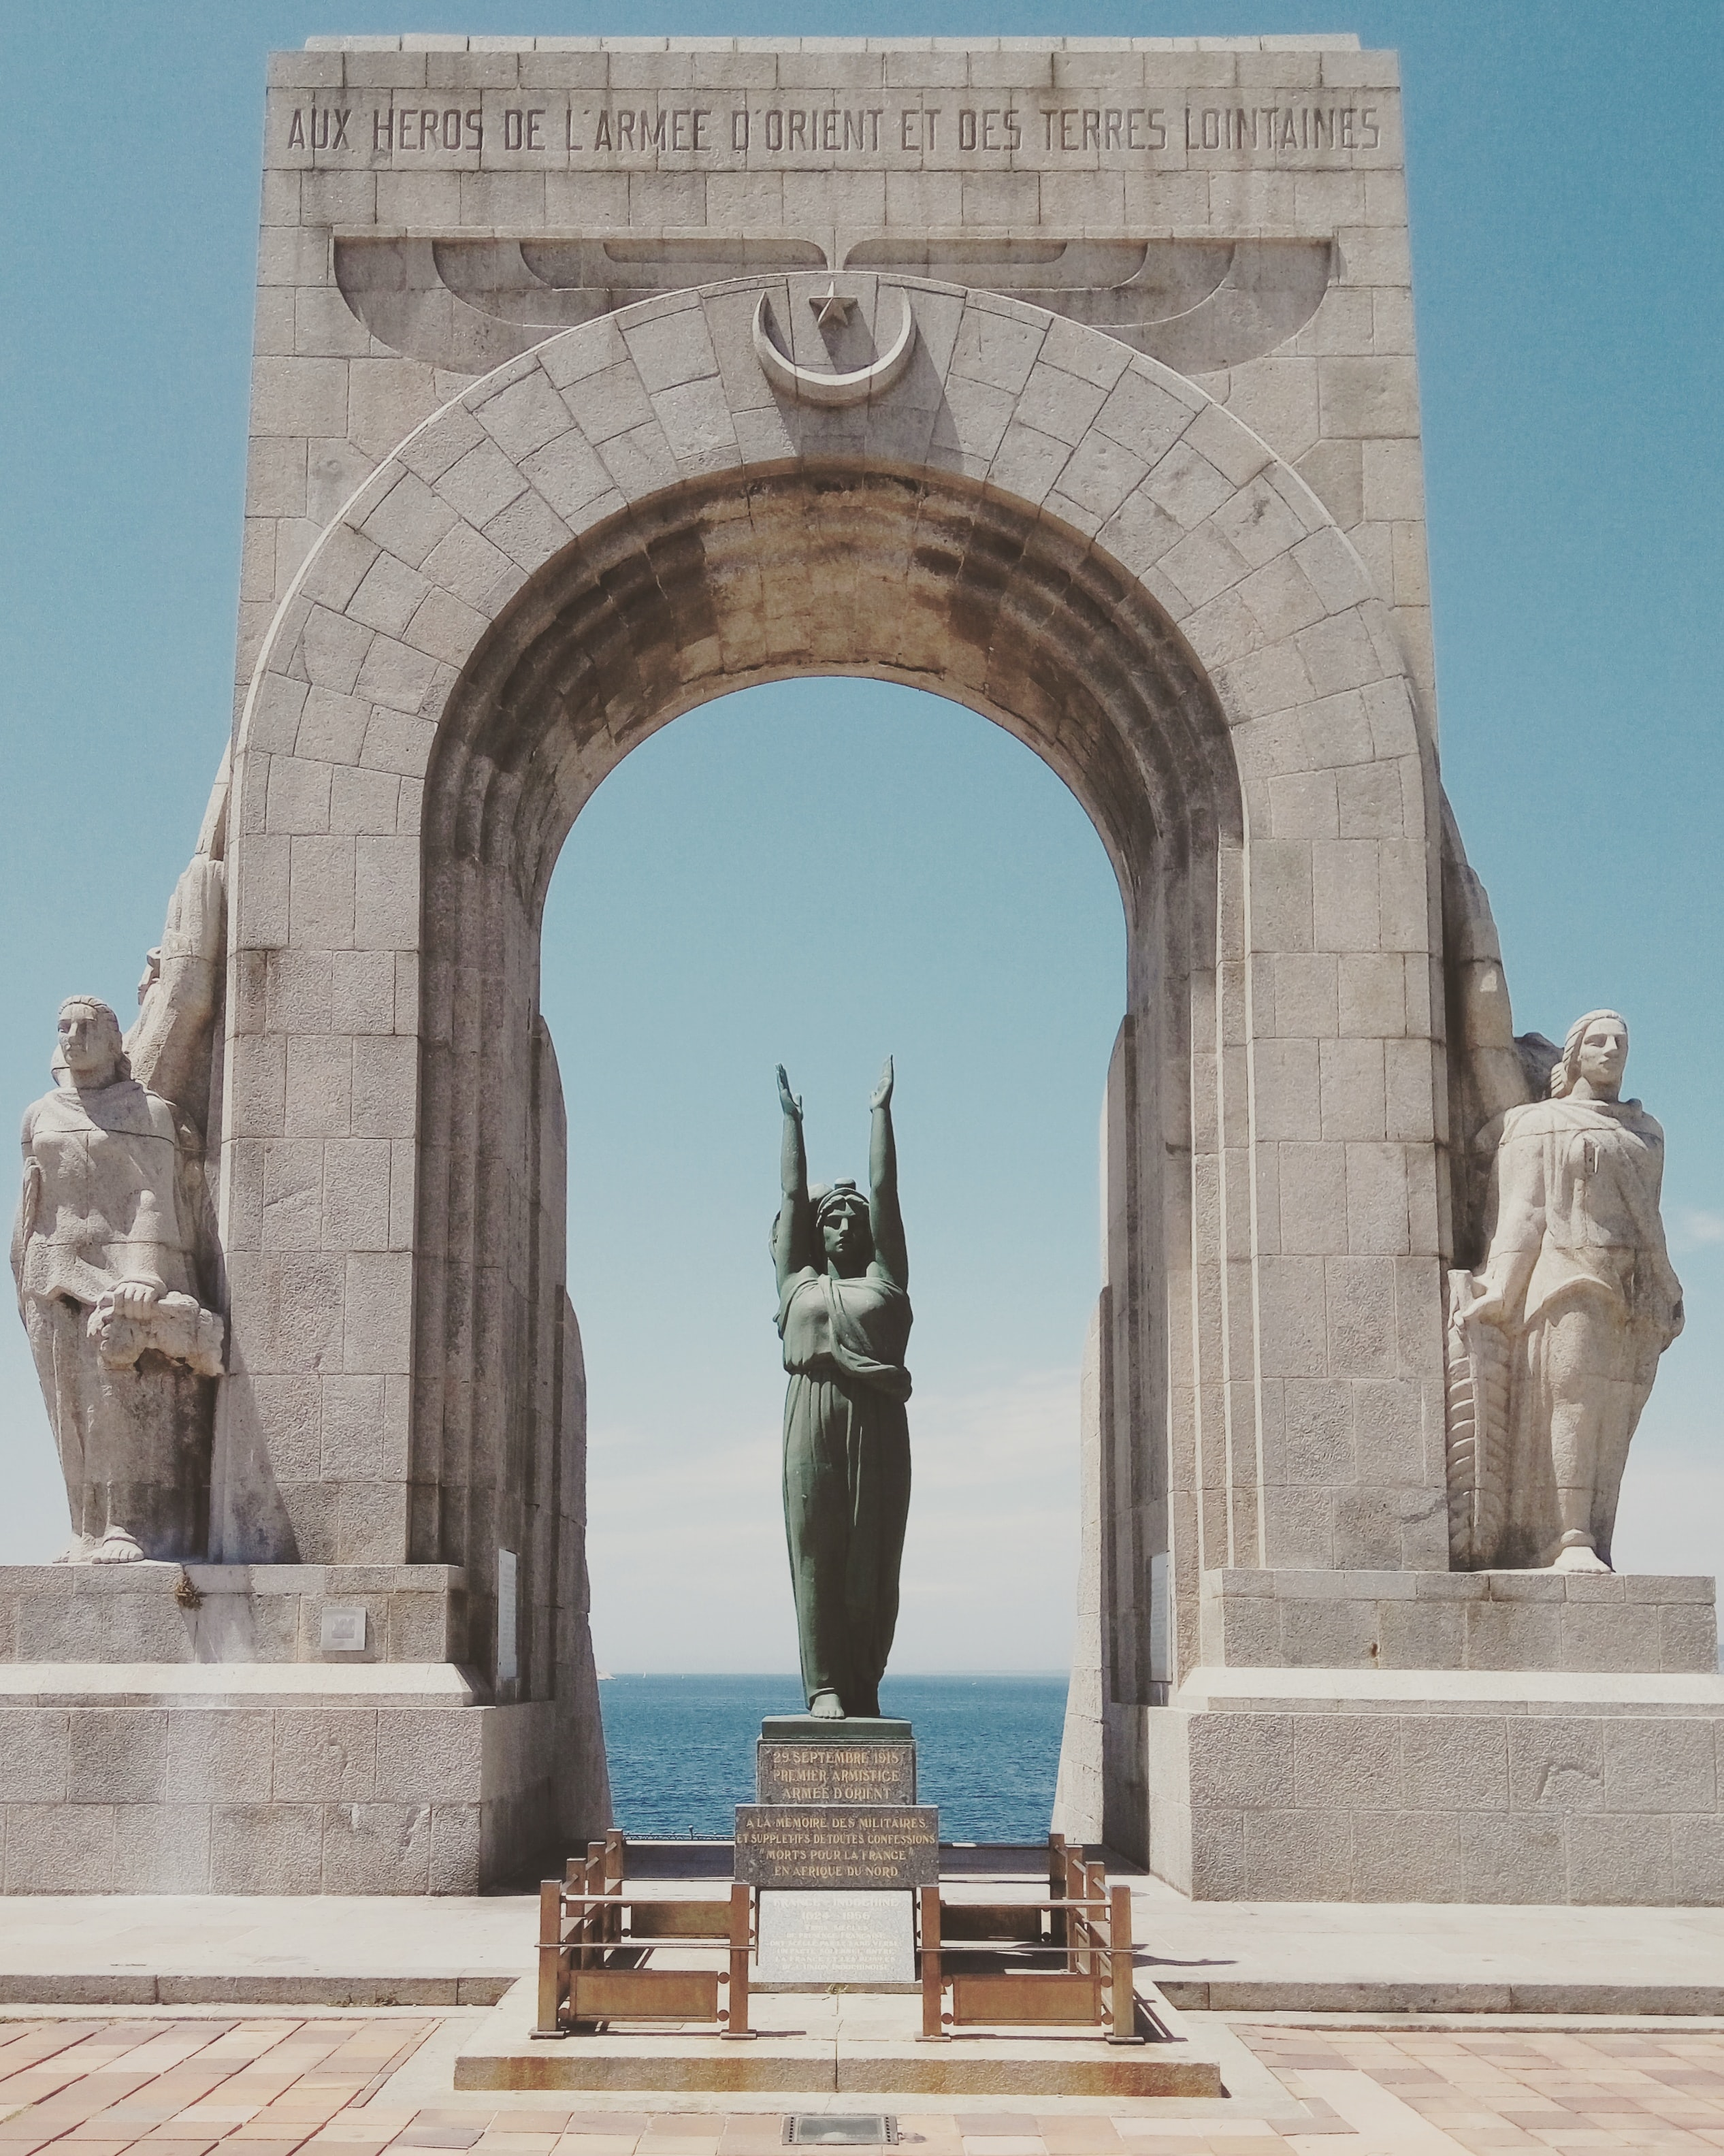 Statues and an arch in Marseille, France.